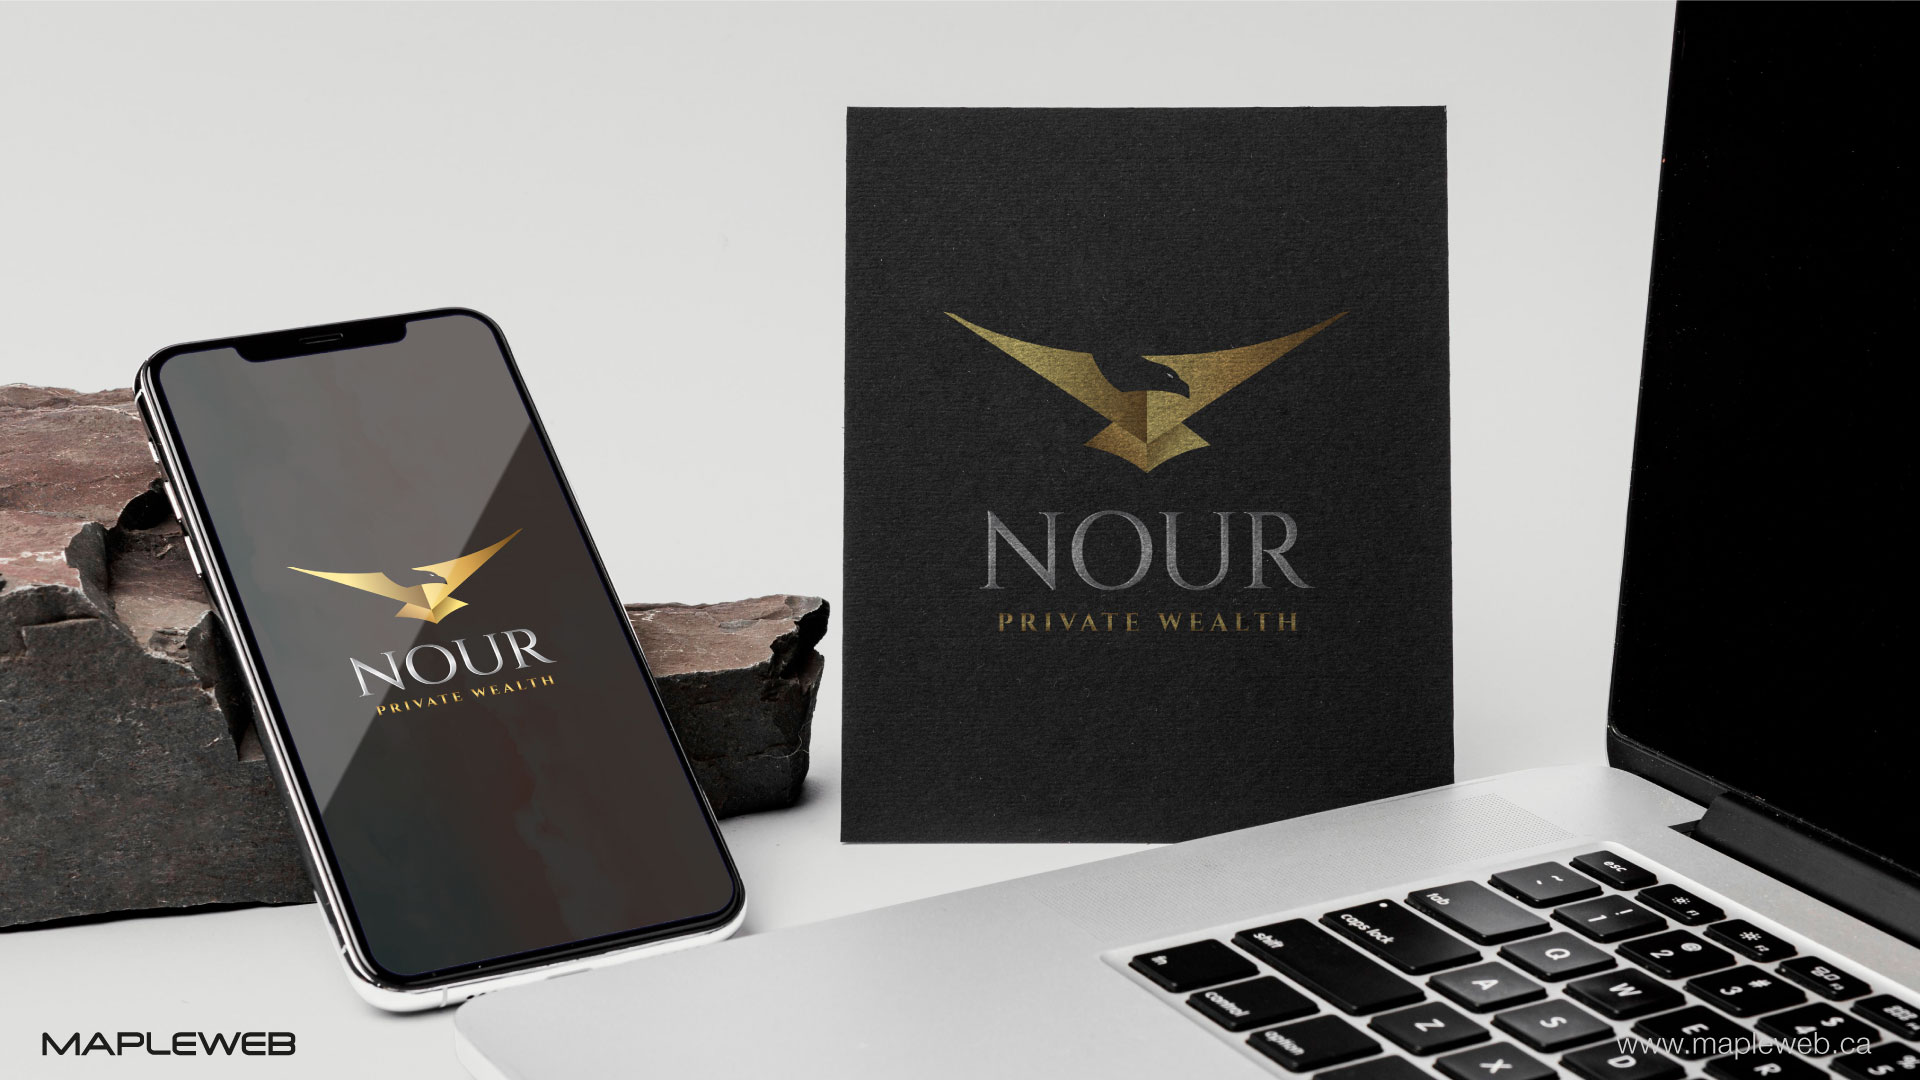 nour-private-wealth-brand-logo-design-by-mapleweb-vancouver-canada-header-mock-02